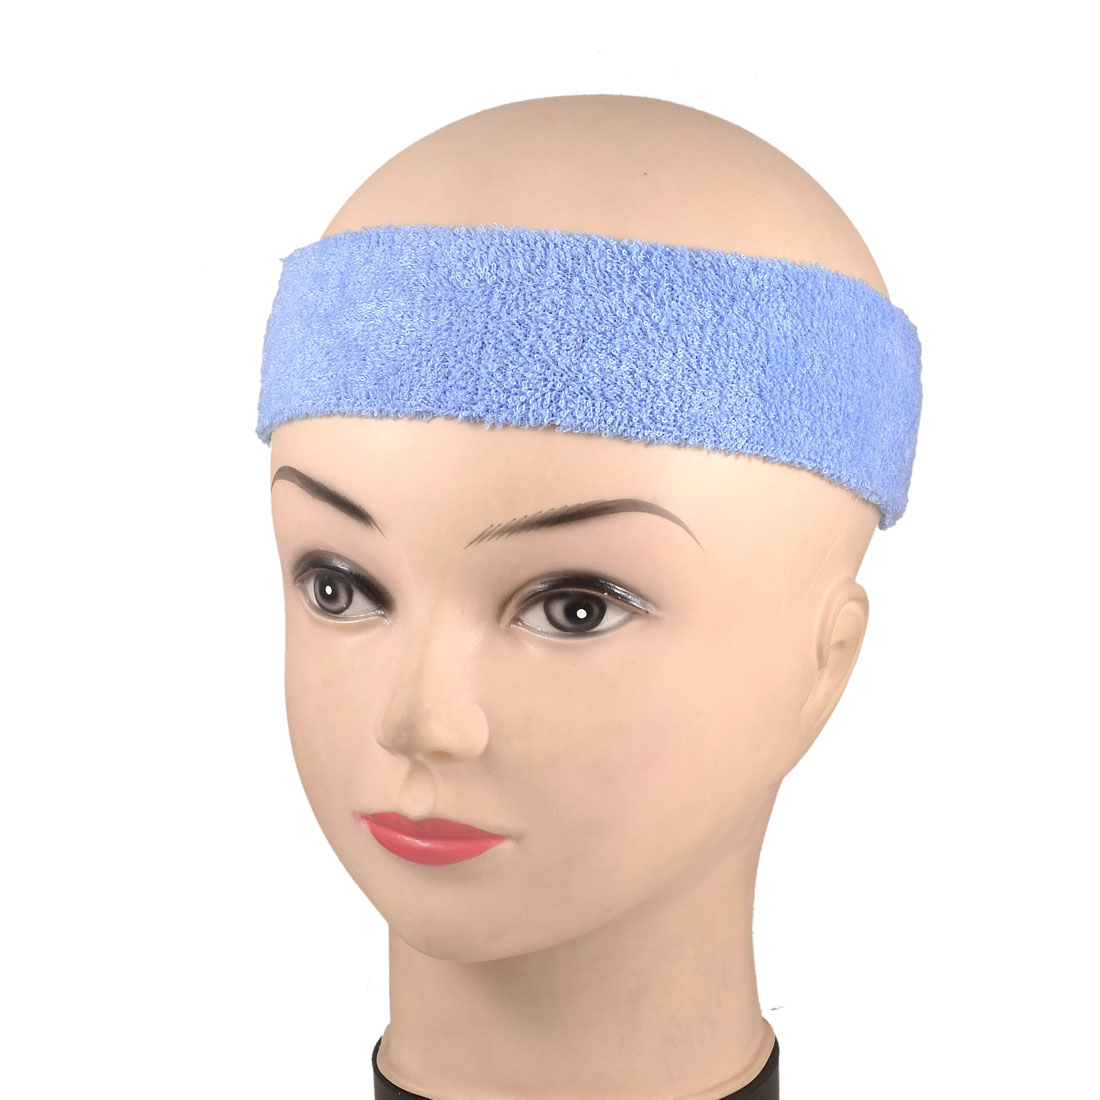 2 Pcs Outdoor Sporting Protective Stretch Sweat Absorb Head Band Light Blue